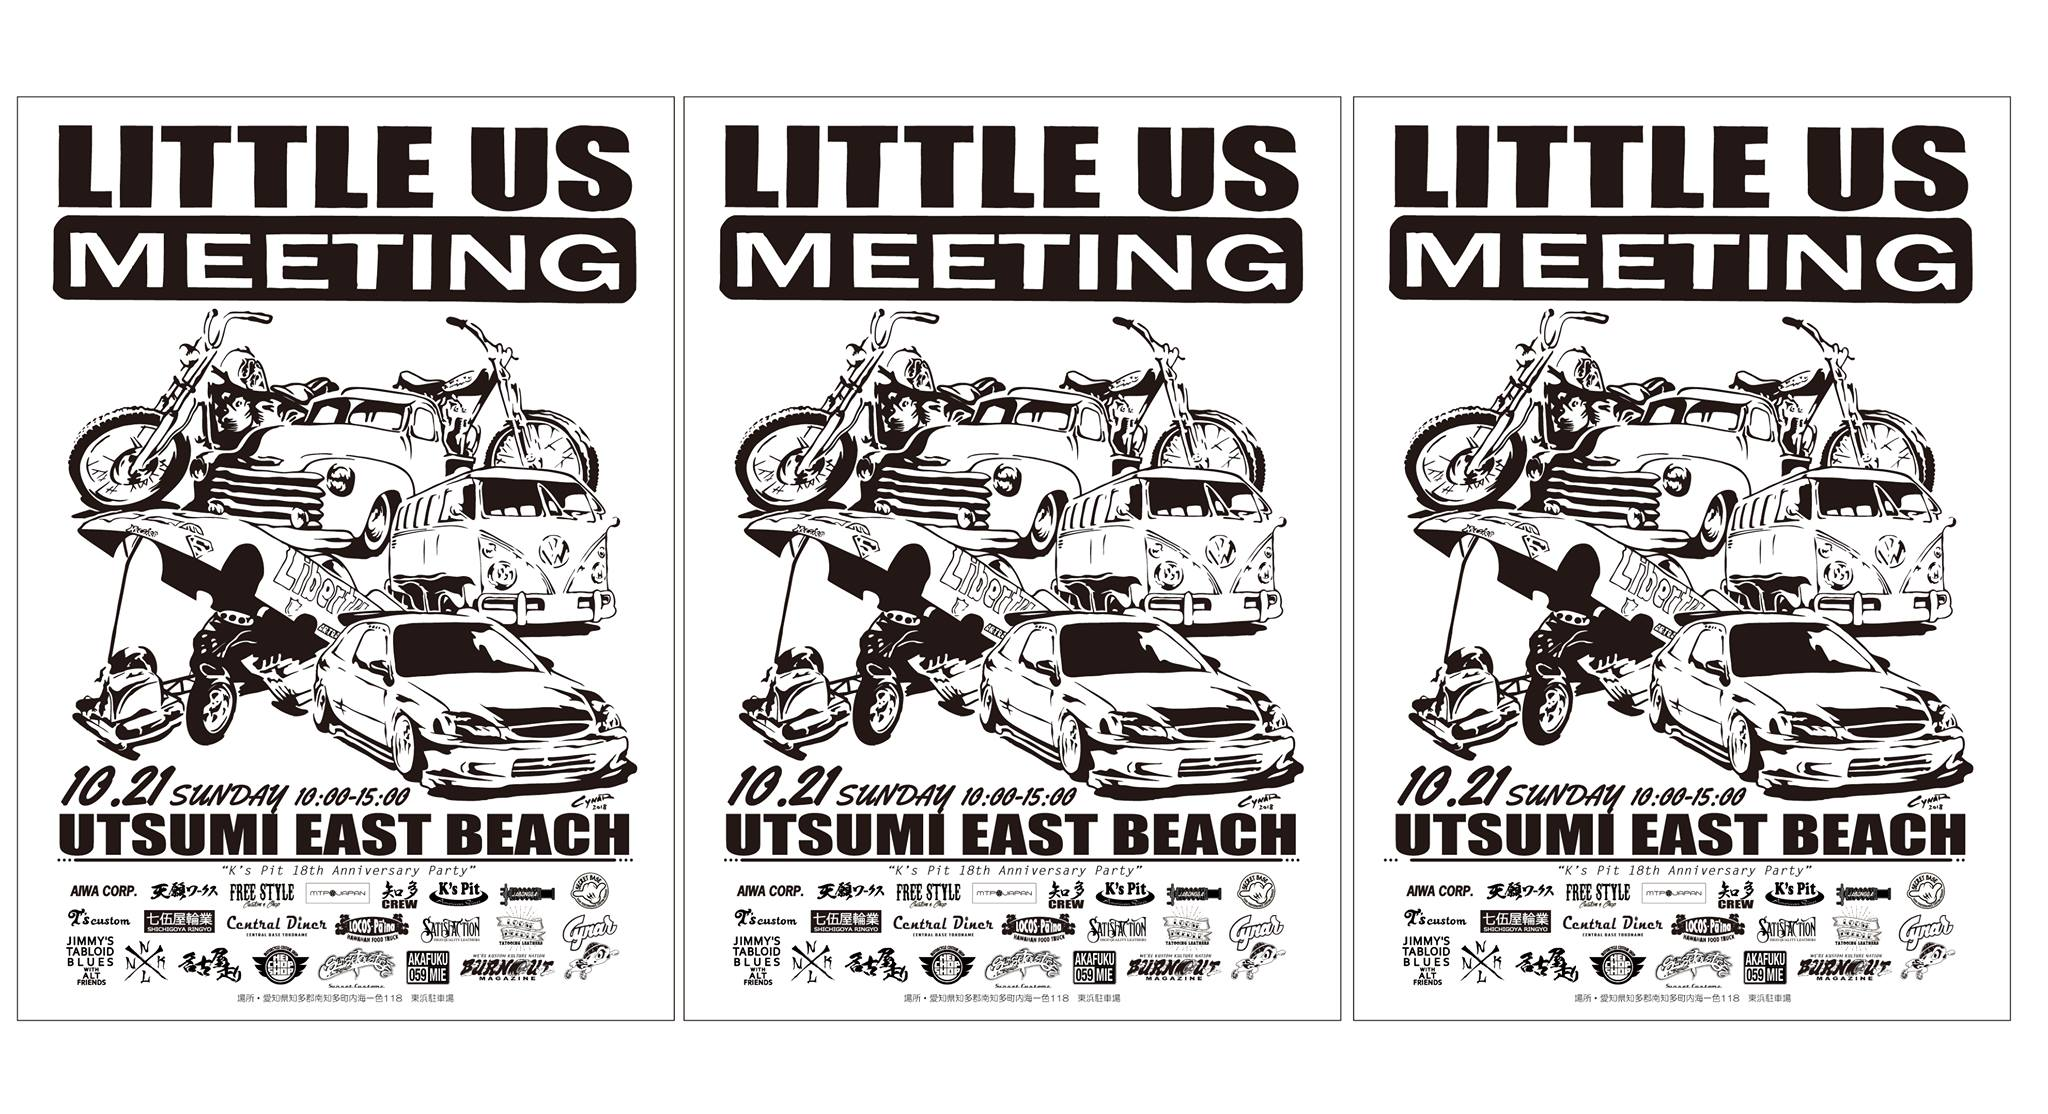 Little US Meeting